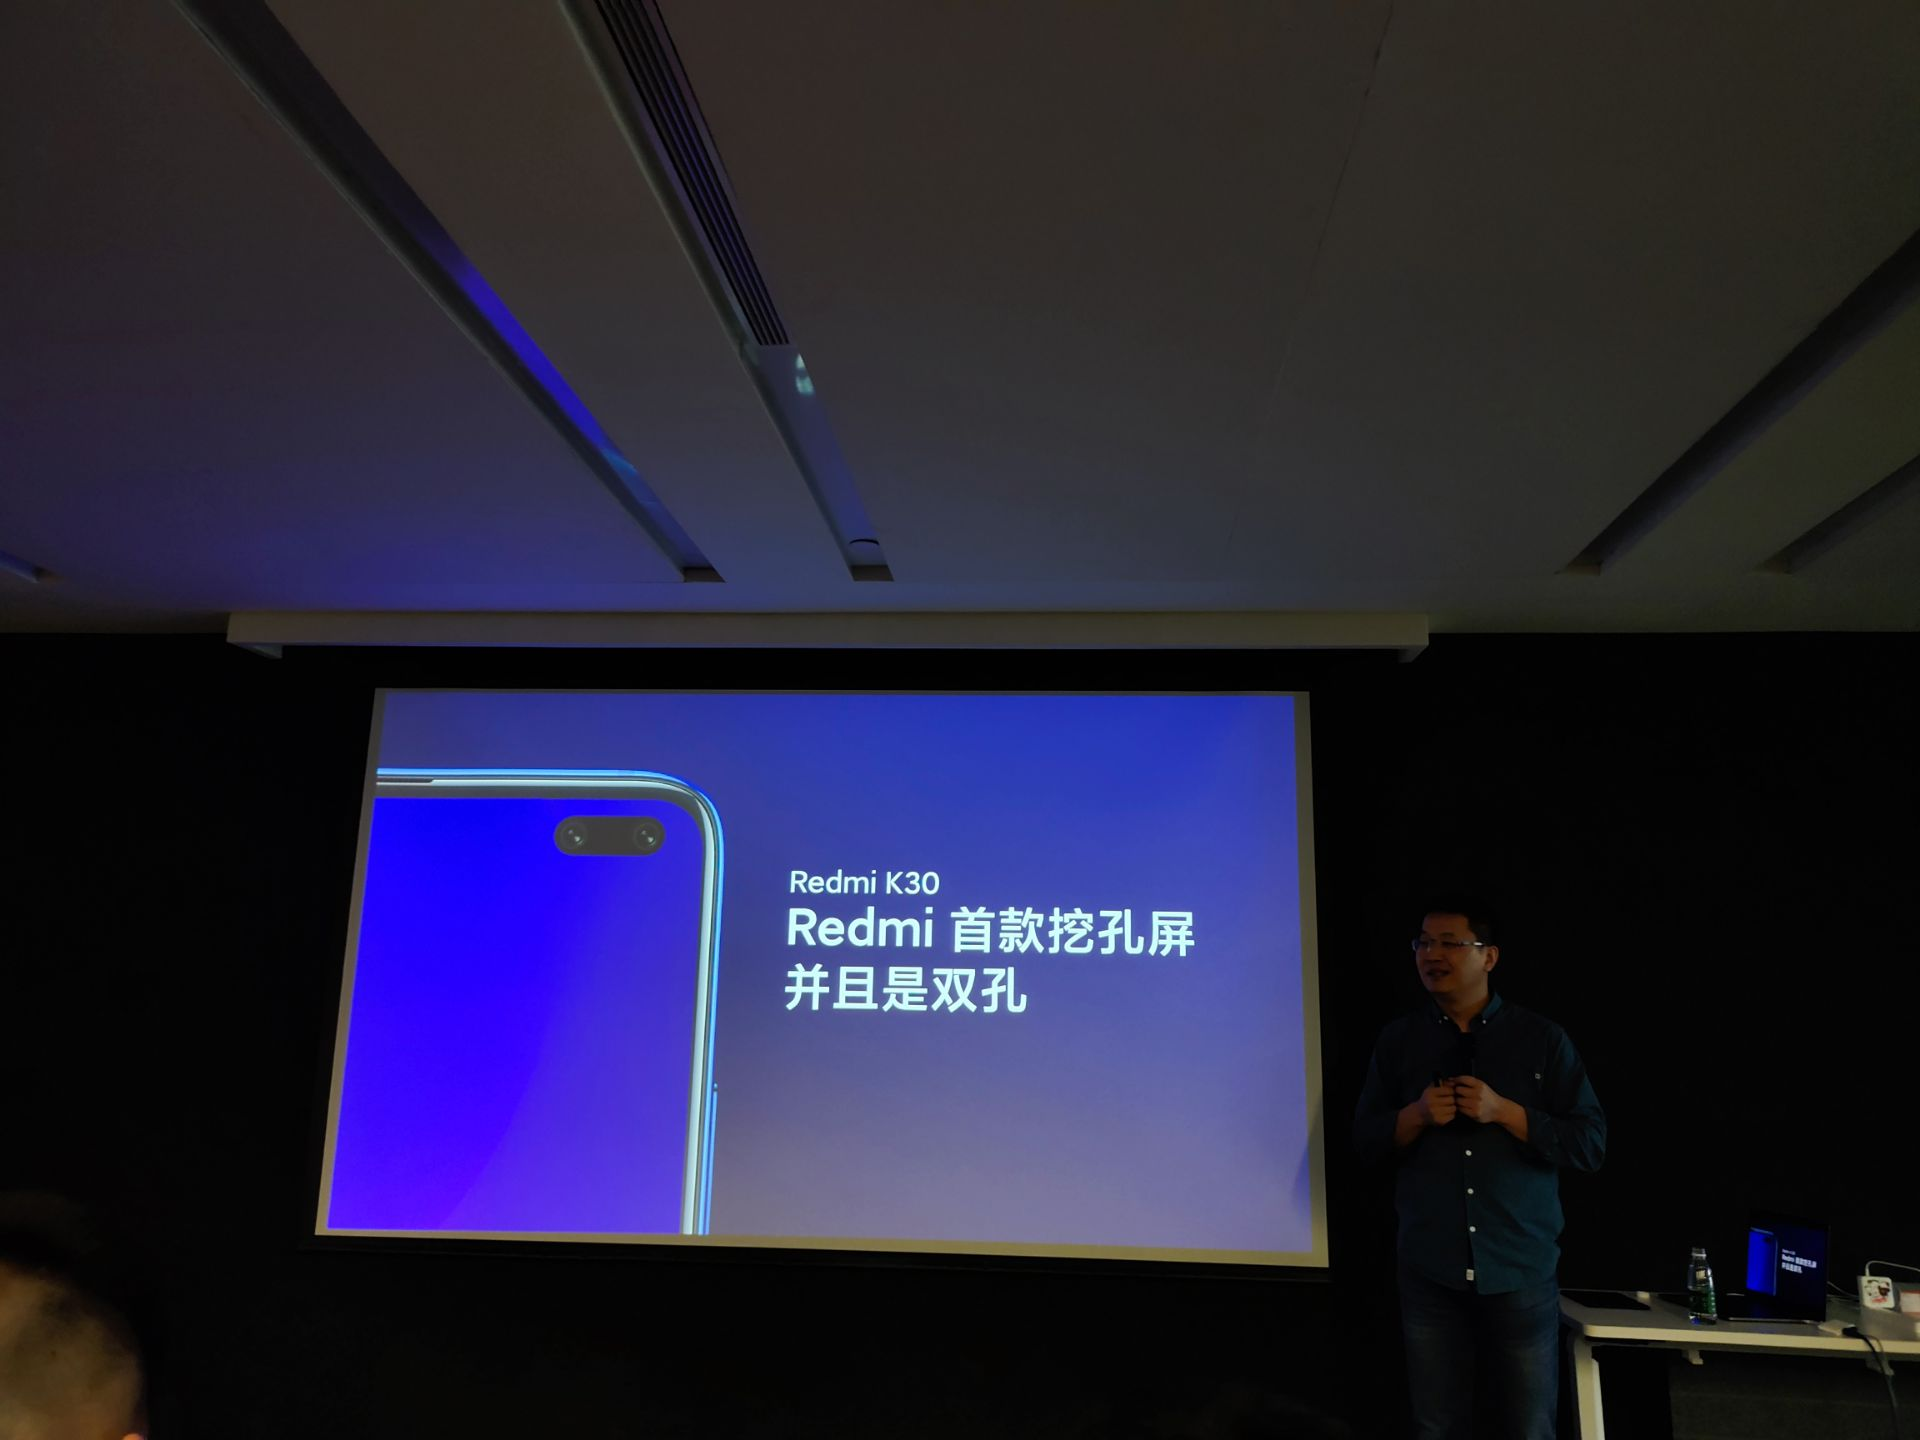 Redmi K30 will bring 5G connectivity and punch hole display